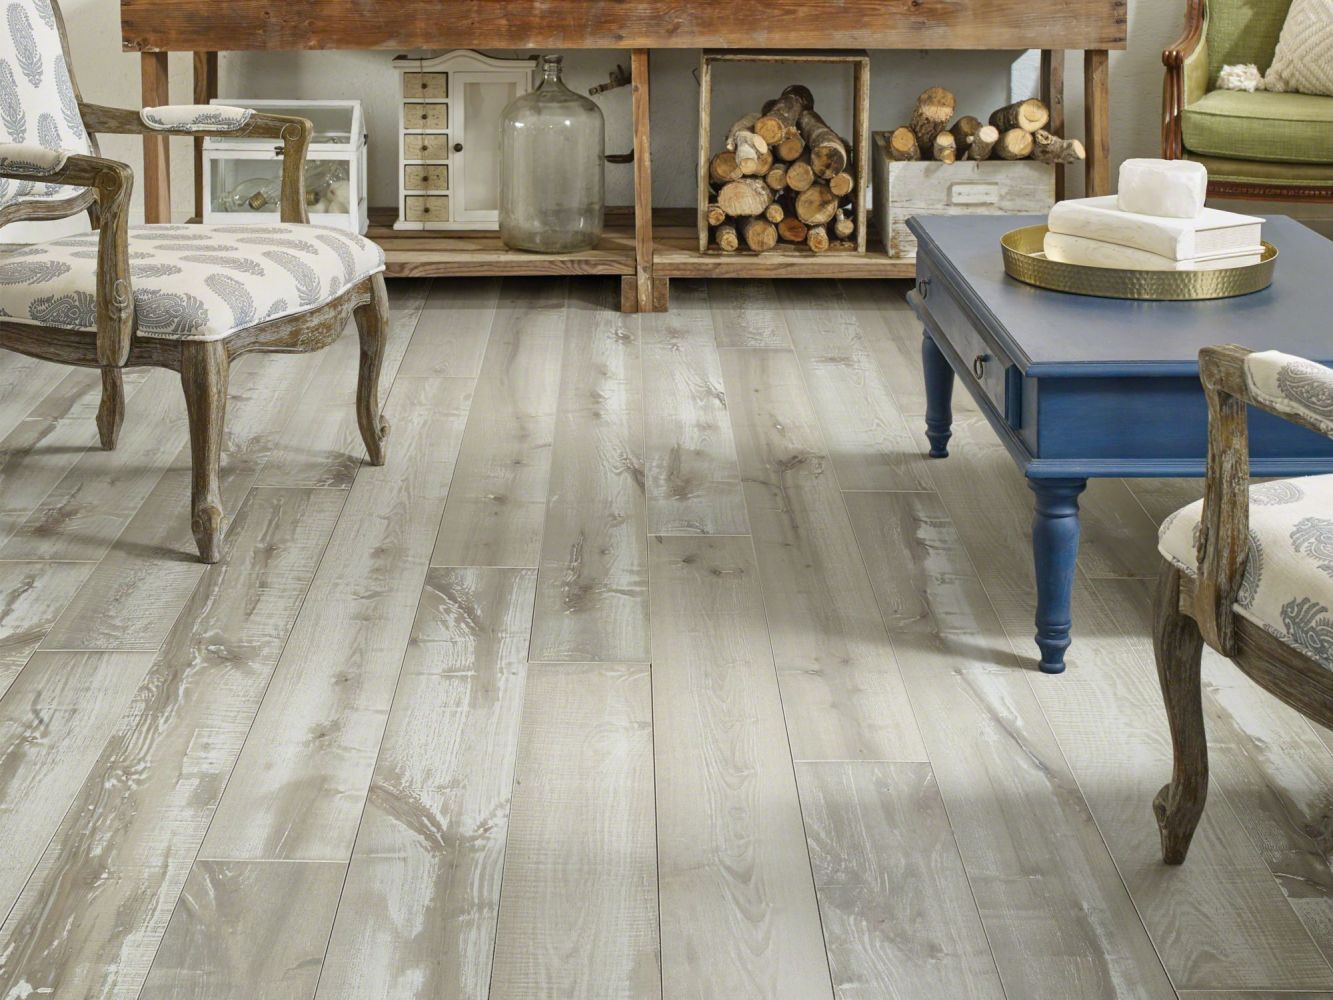 Shaw Floors Repel Hardwood Inspirations Maple Celestial 05047_212SA